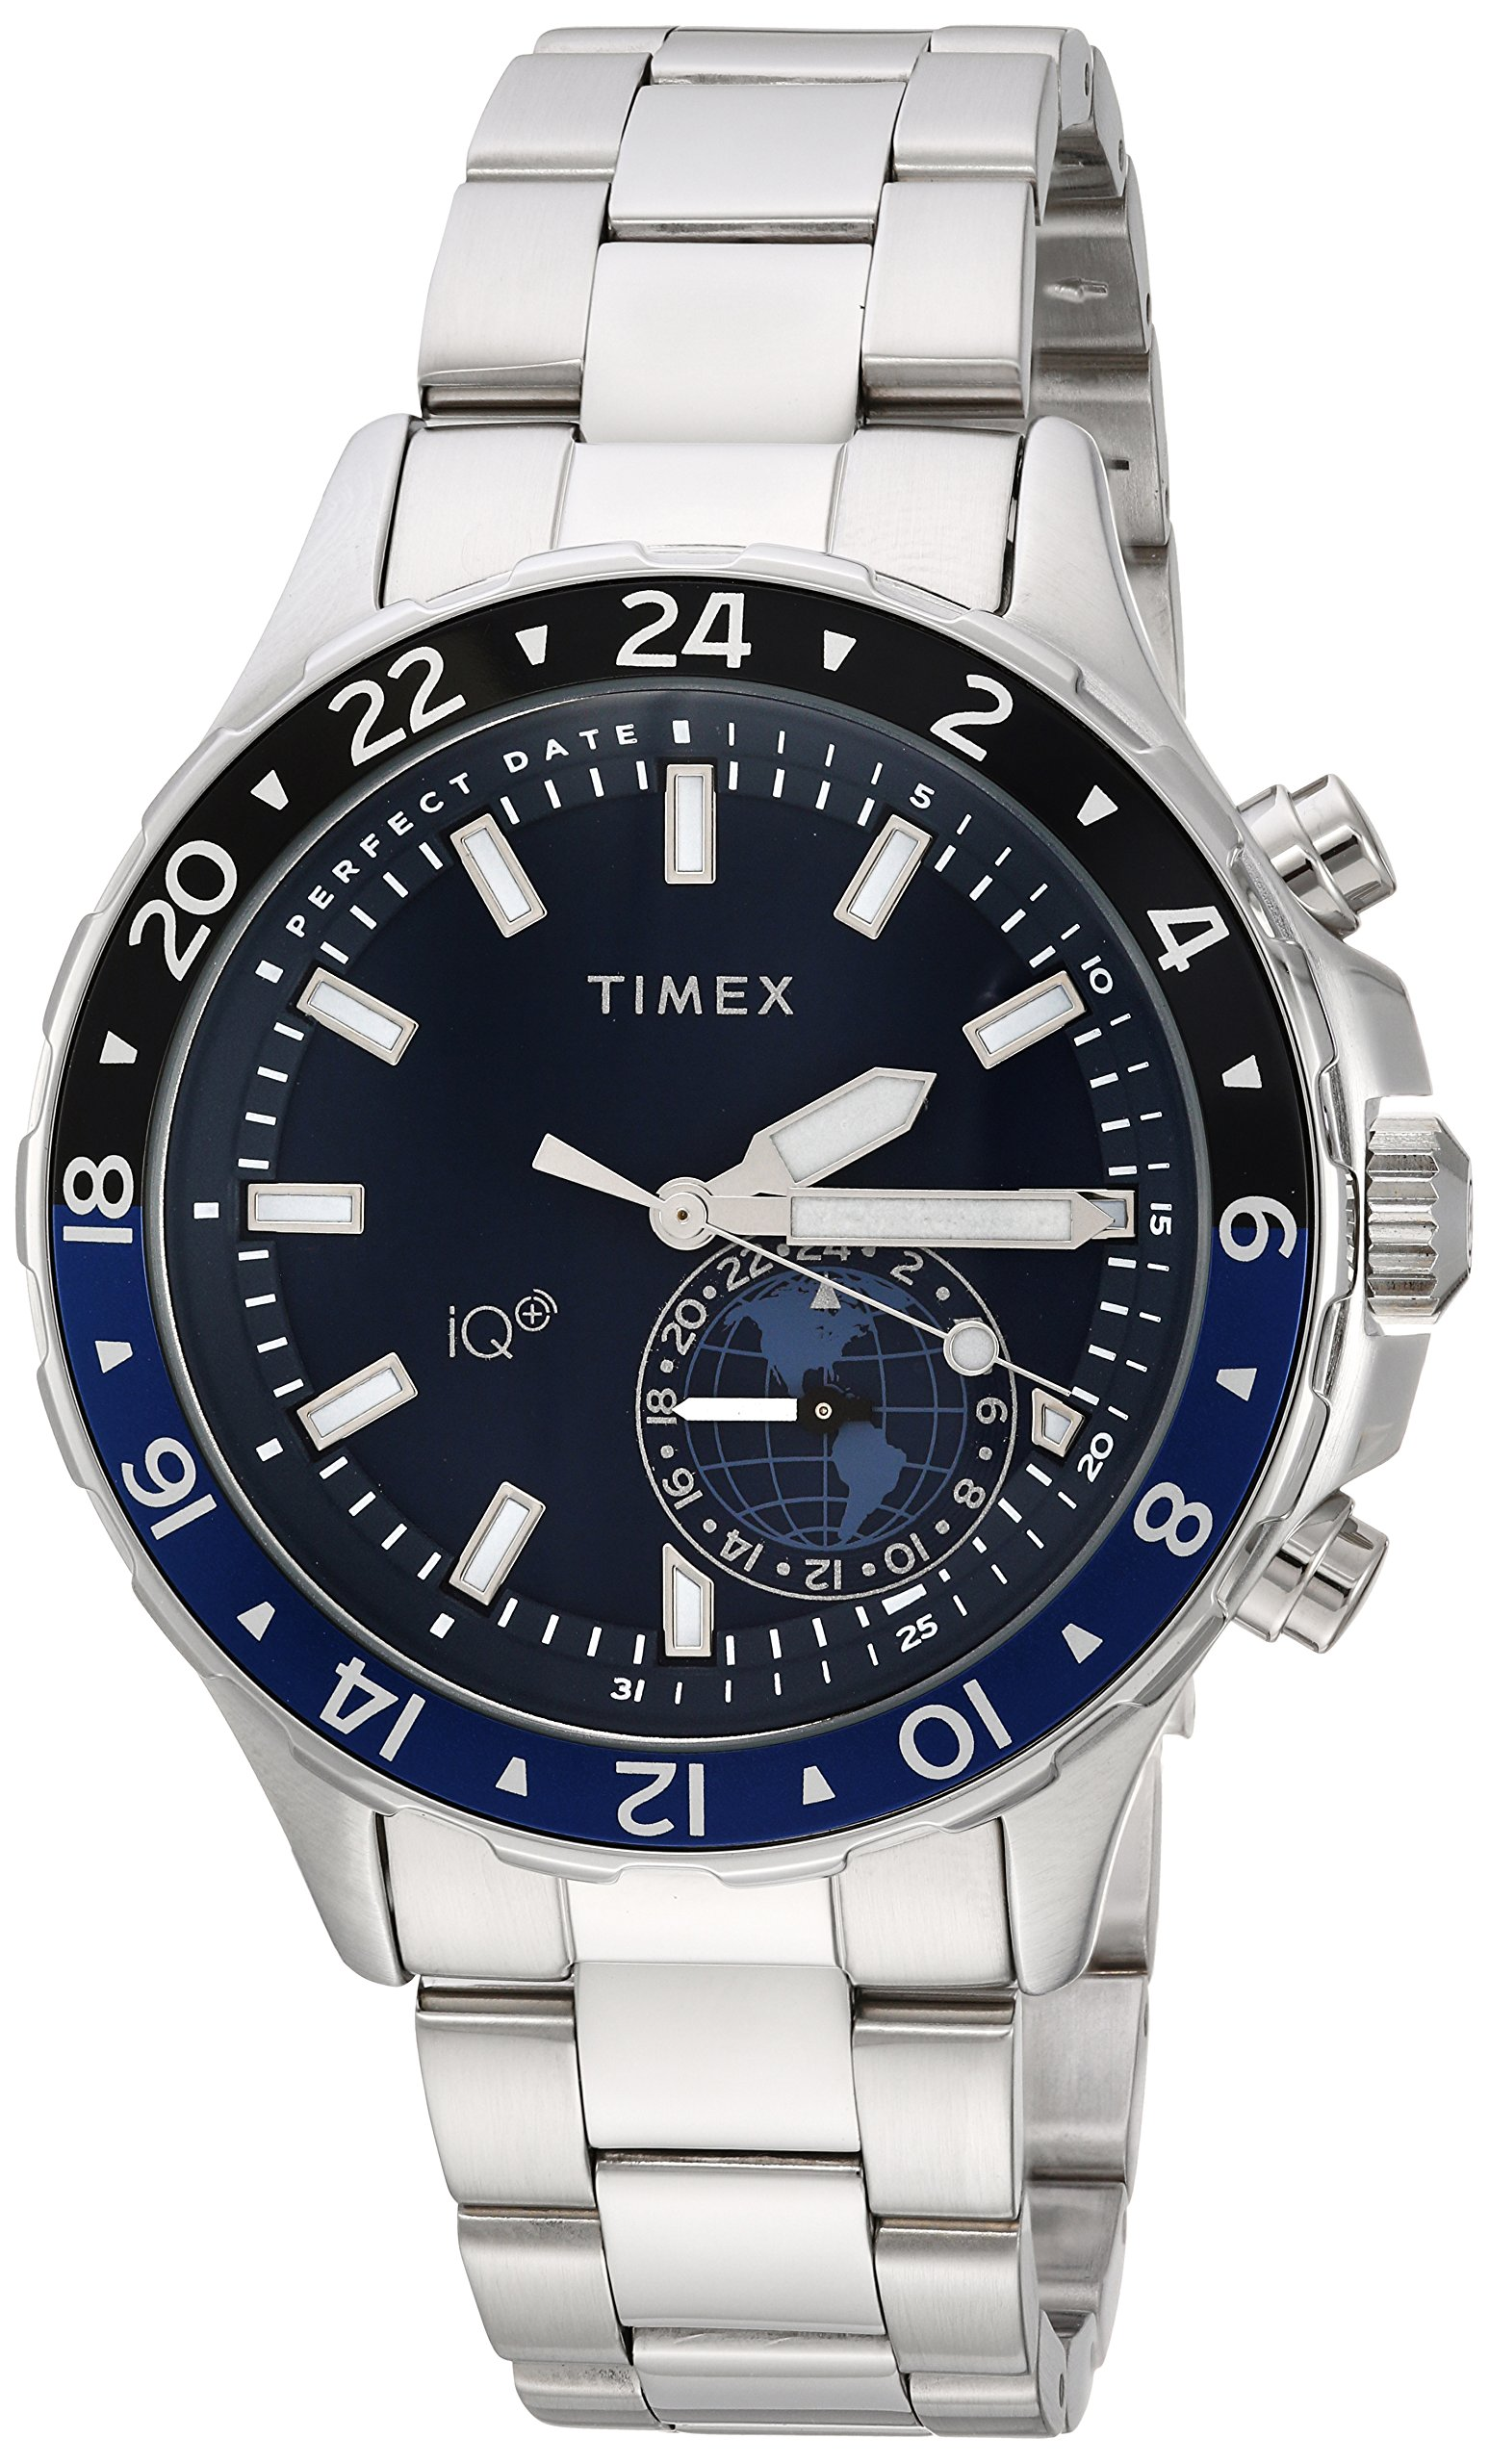 Timex Men's TW2R39700 IQ+ Move Multi-Time Silver-Tone/Blue Stainless Steel Bracelet Watch by Timex